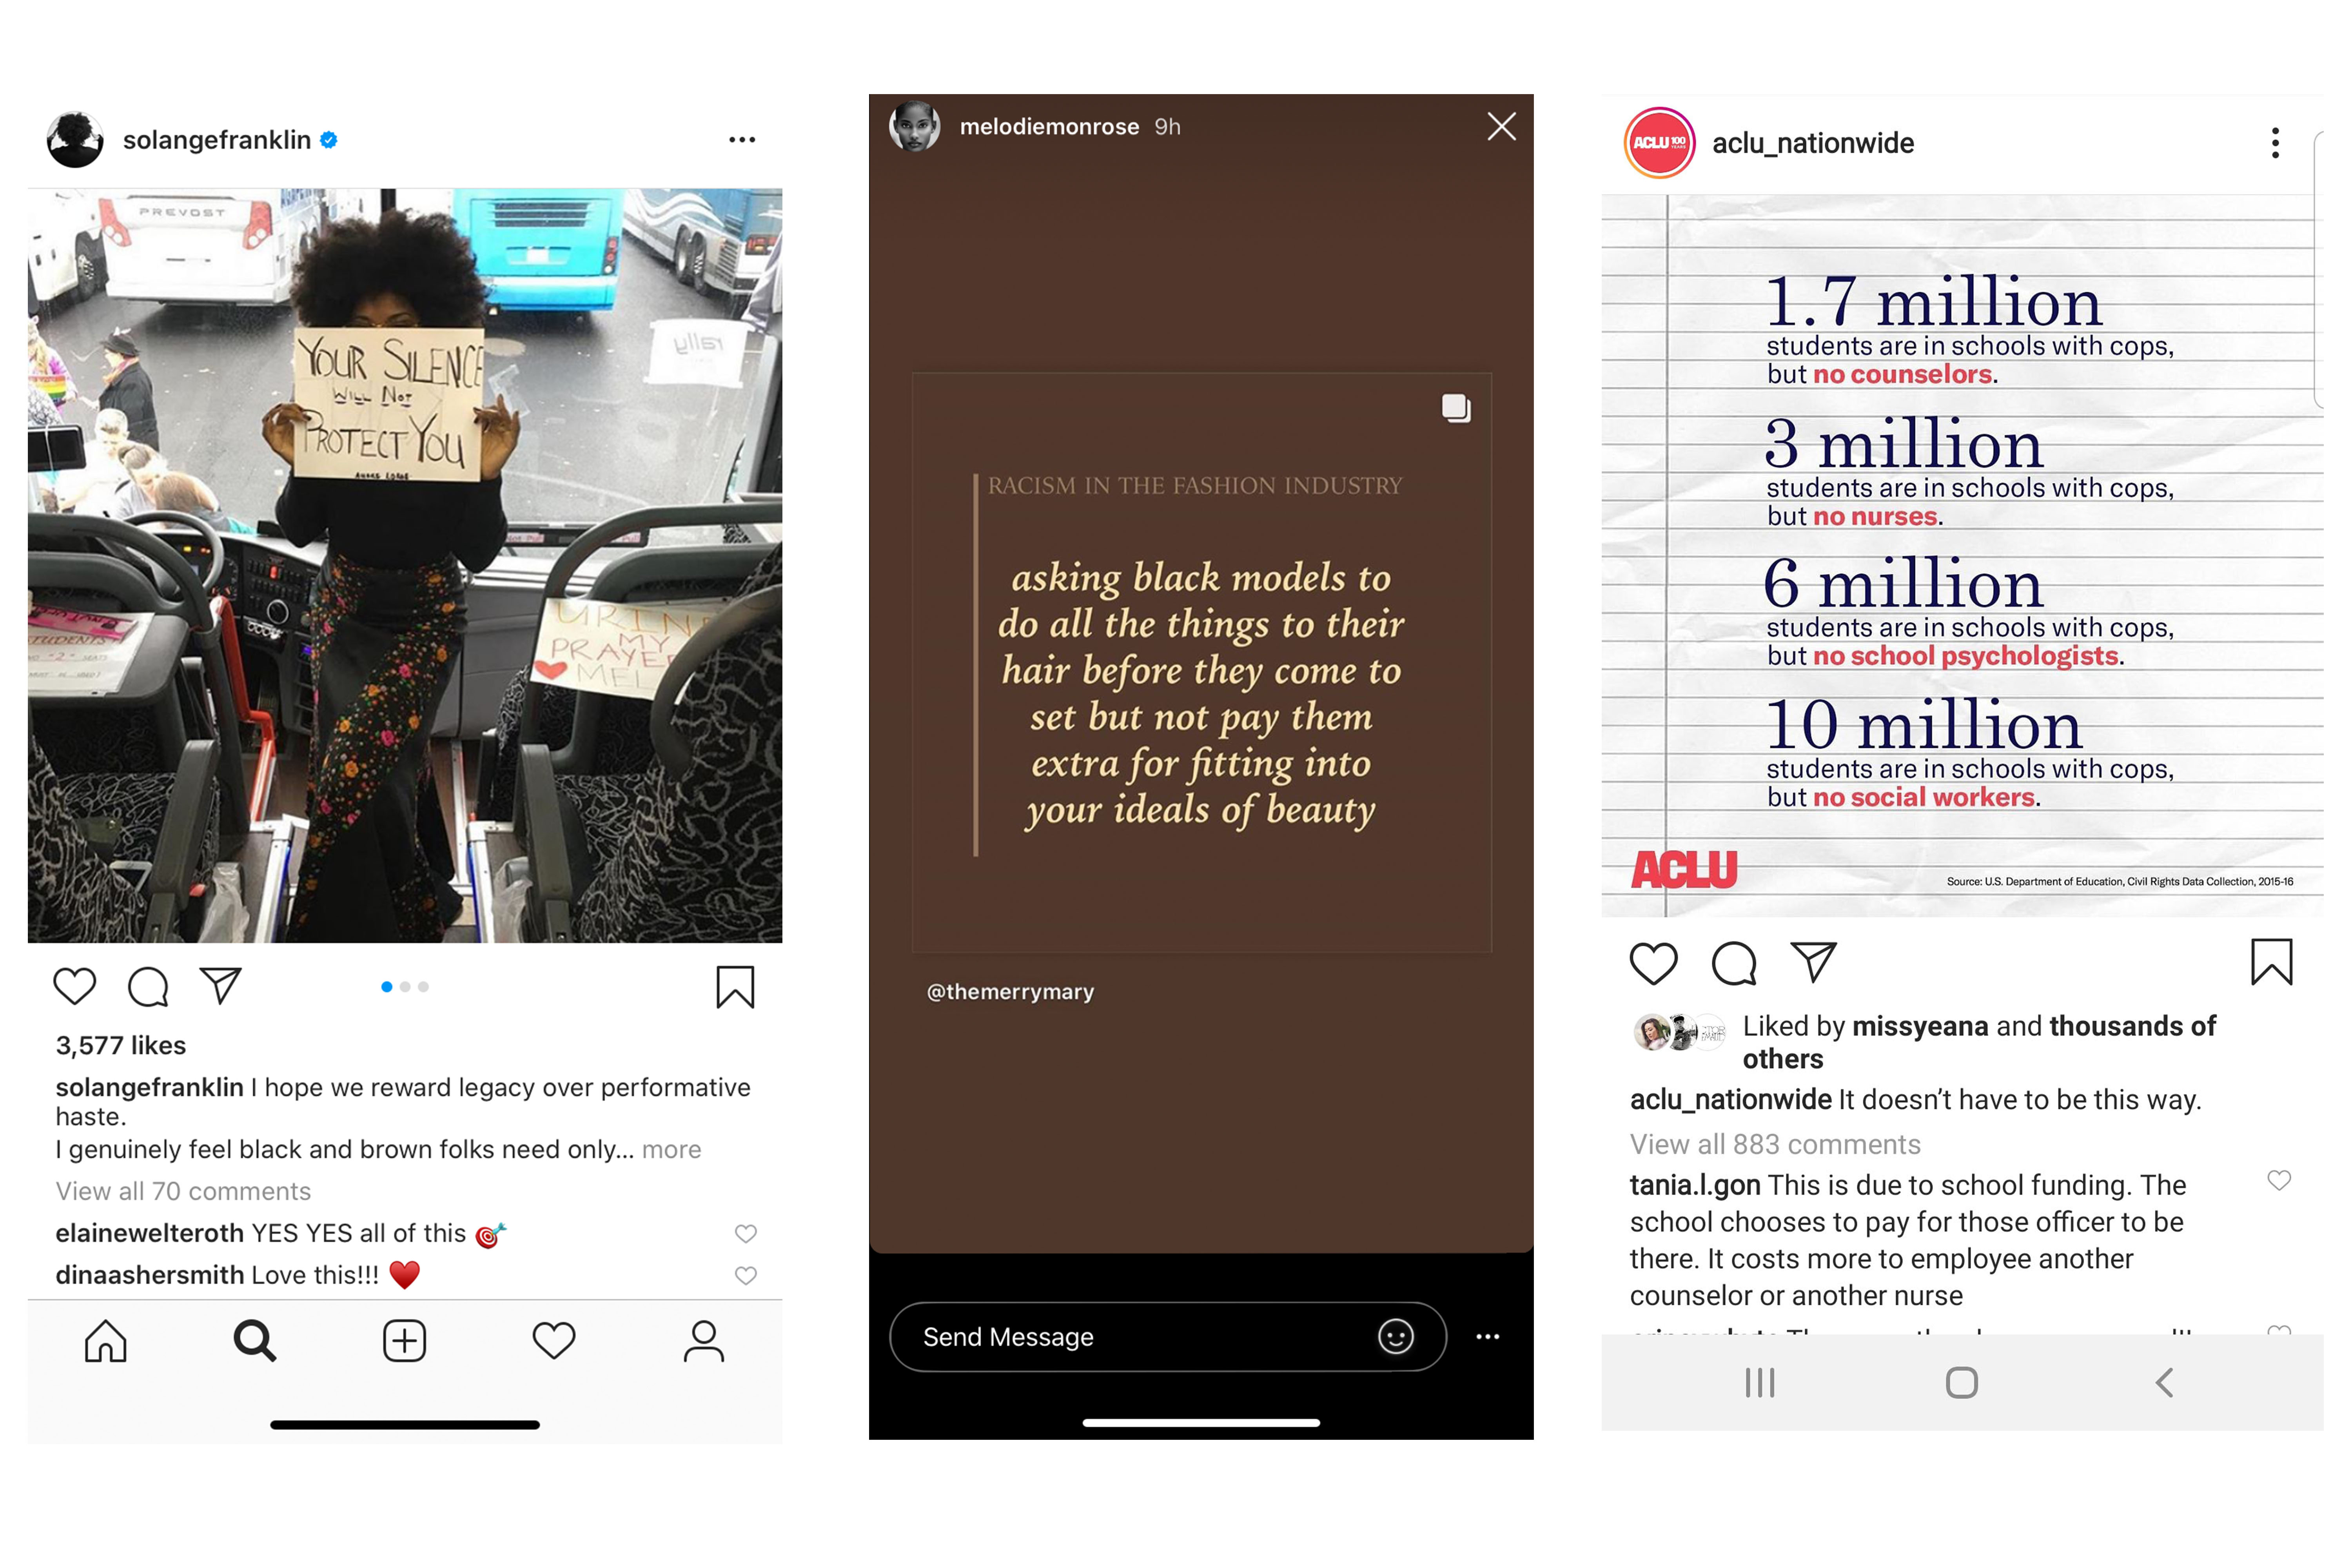 Instagram posts from Solange Franklin, Mélodie Monrose, and ACLU.